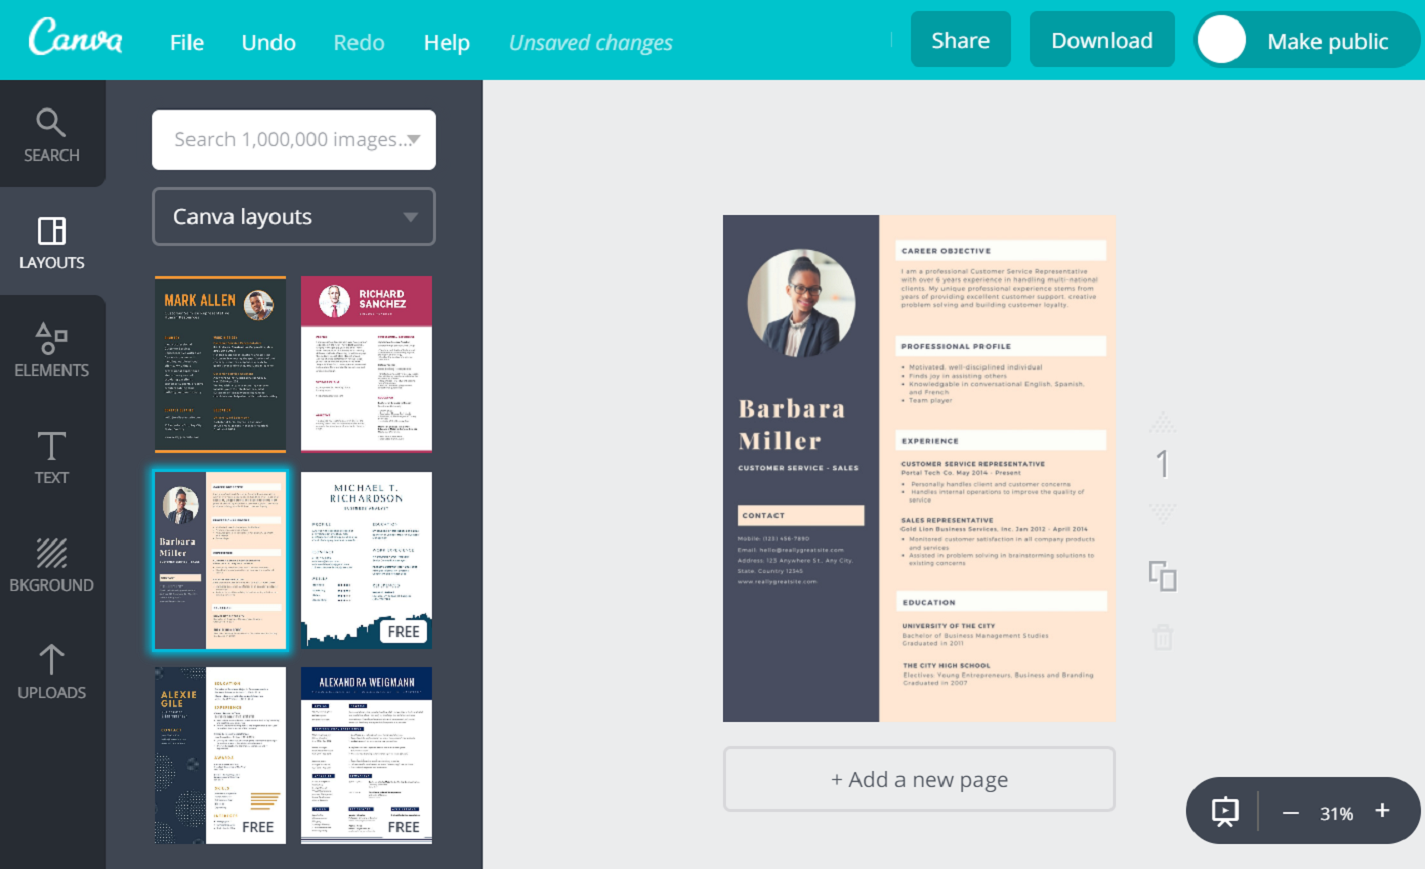 Online Resume Maker For Freshers (Free!) By Canva